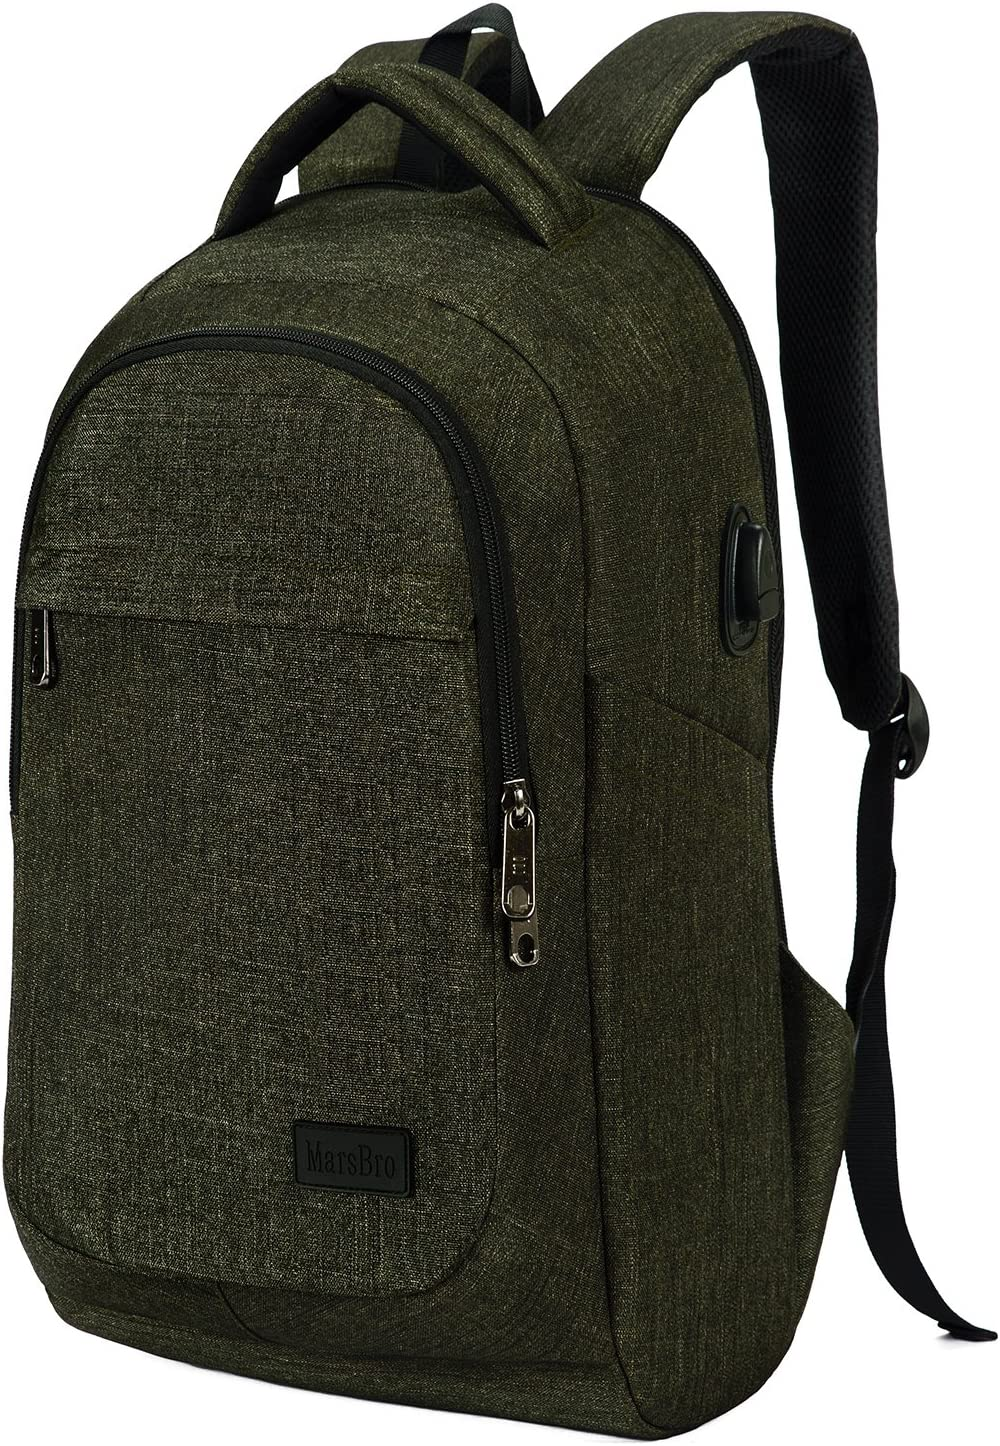 MarsBro Laptop Backpack, Business Computer Bag Travel College Water Resistant Anti Theft 15.6 Inch Bag for Men Women Army Green